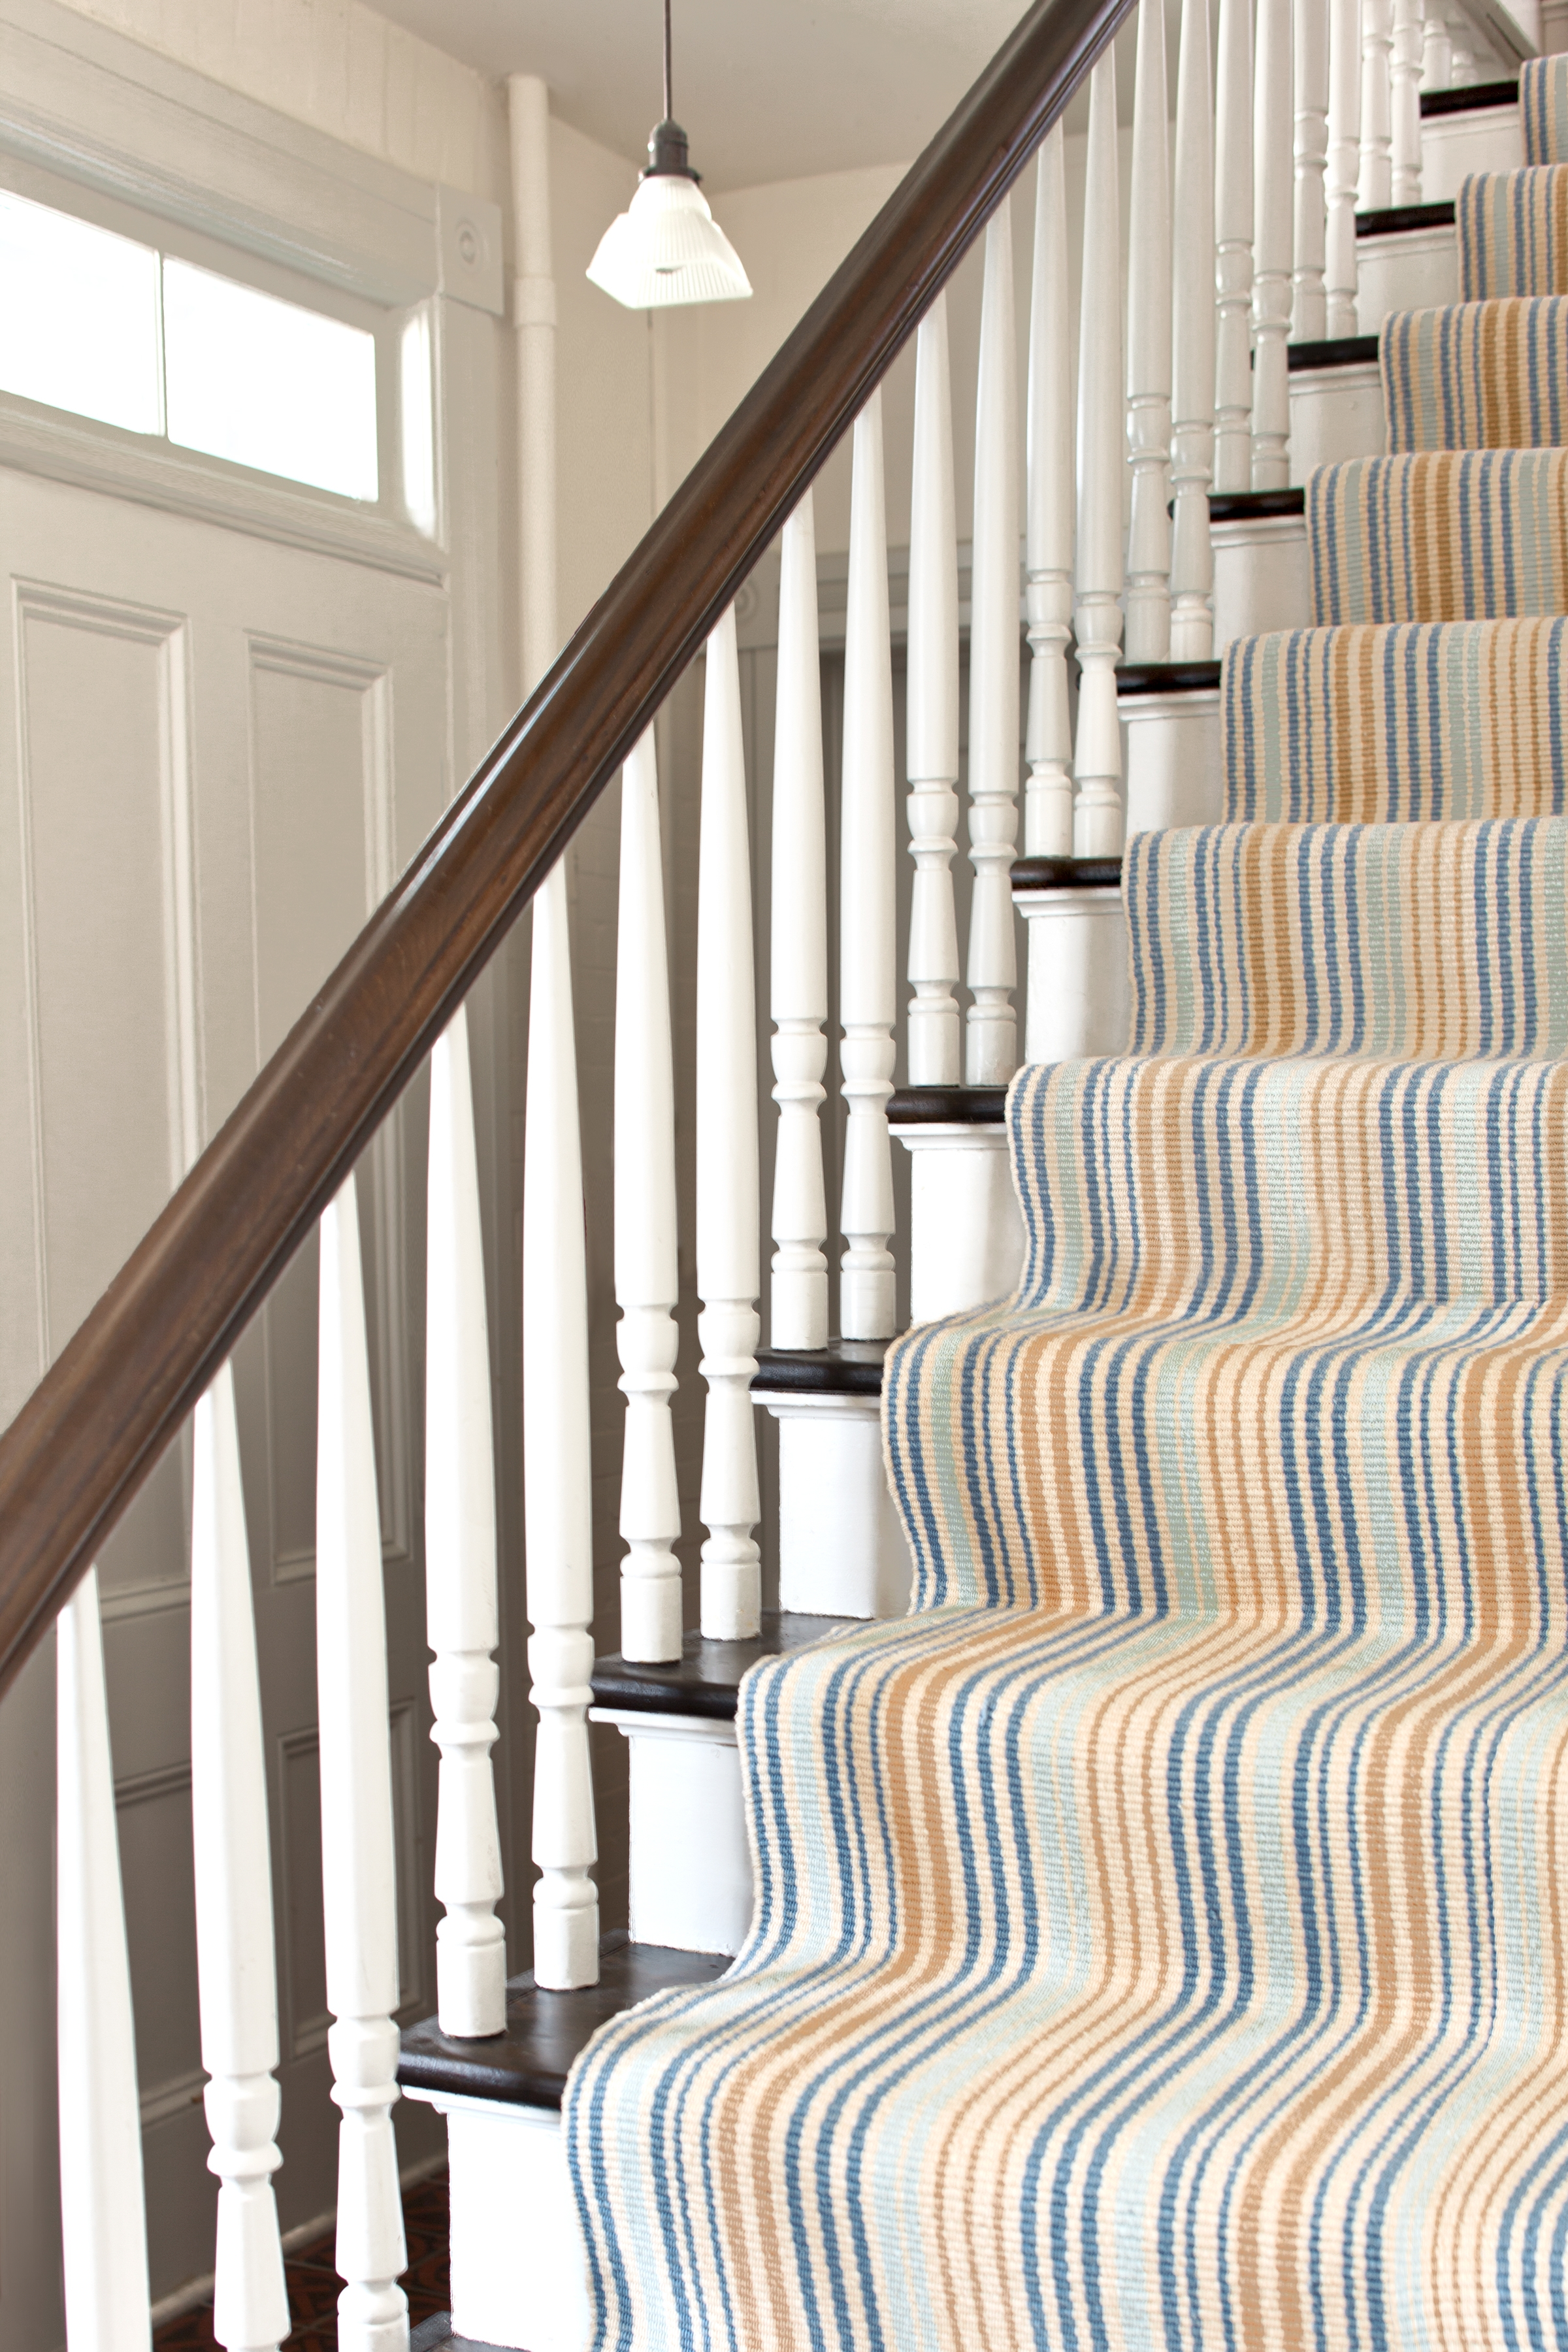 How To Choose A Runner Rug For A Stair Installation Inside Rugs For Staircases (#17 of 20)